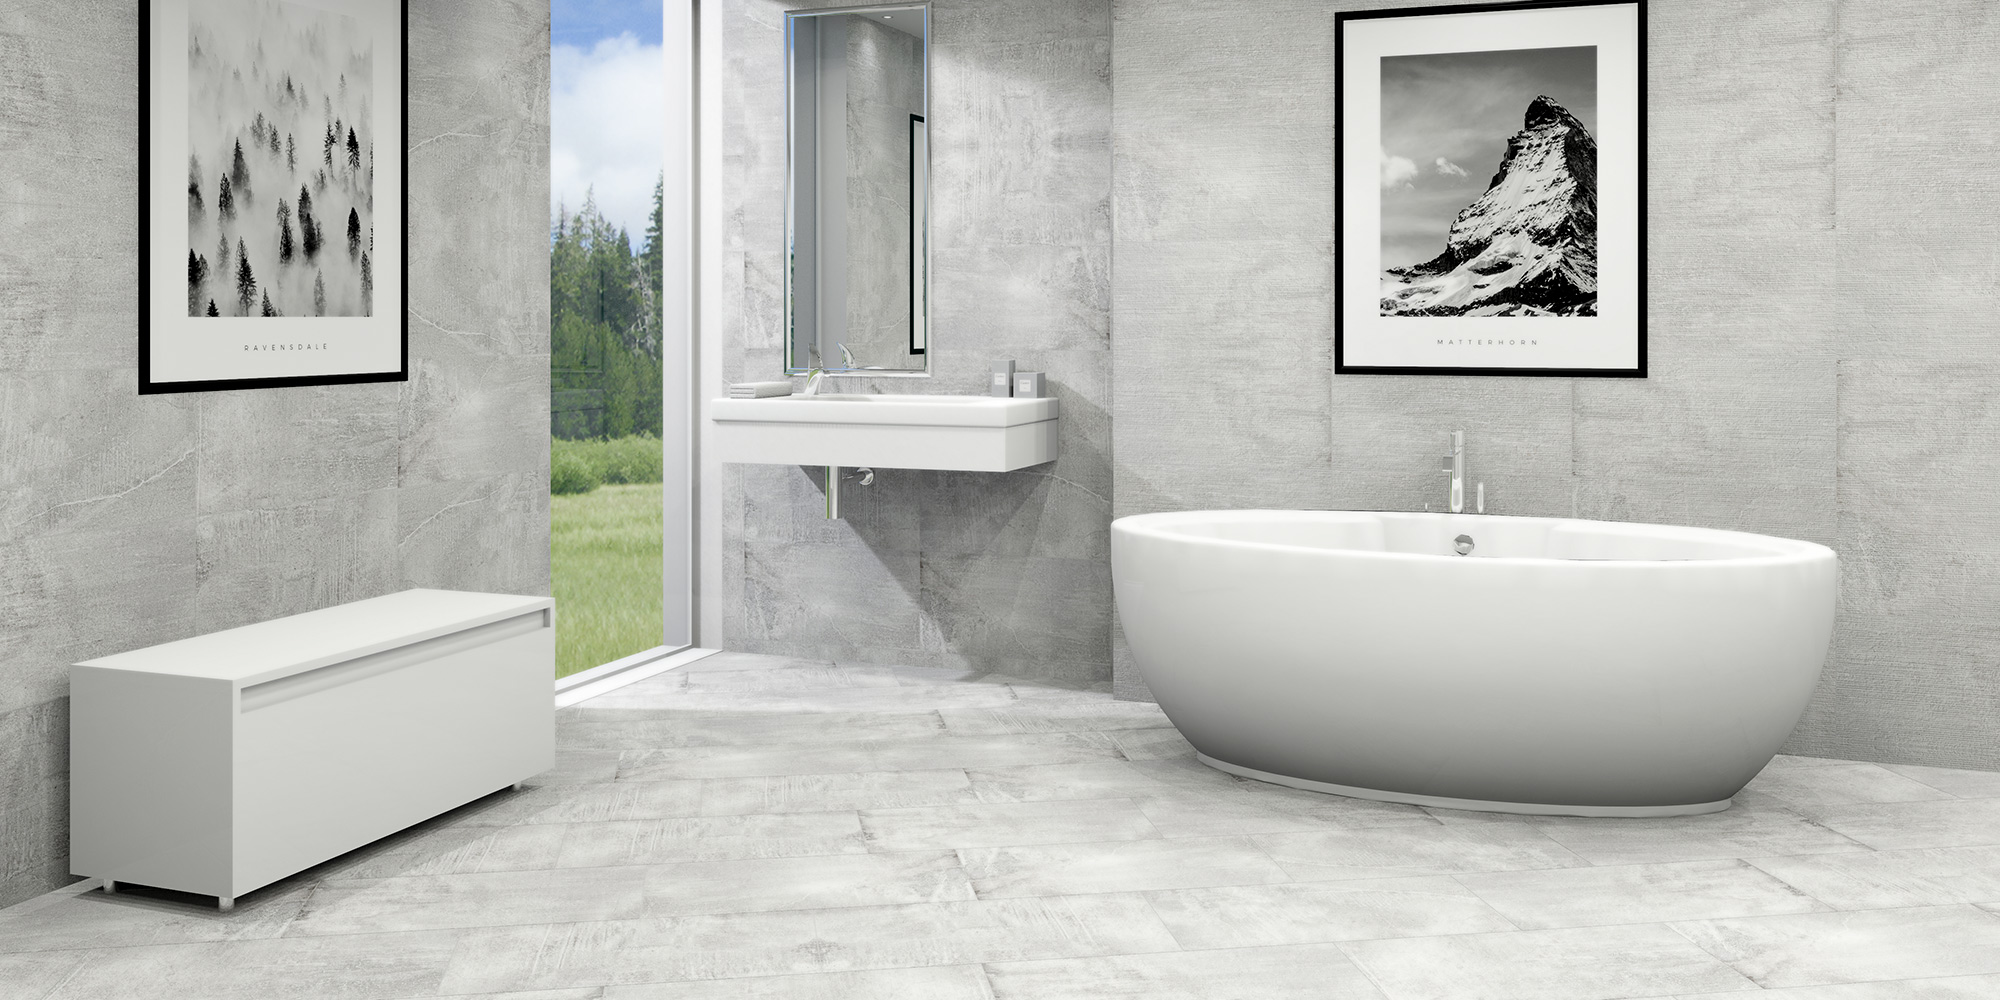 Signum Silver and Grey 33x66. Textured stone look wall and floor porcelain tiles with 3D effect relief decors.